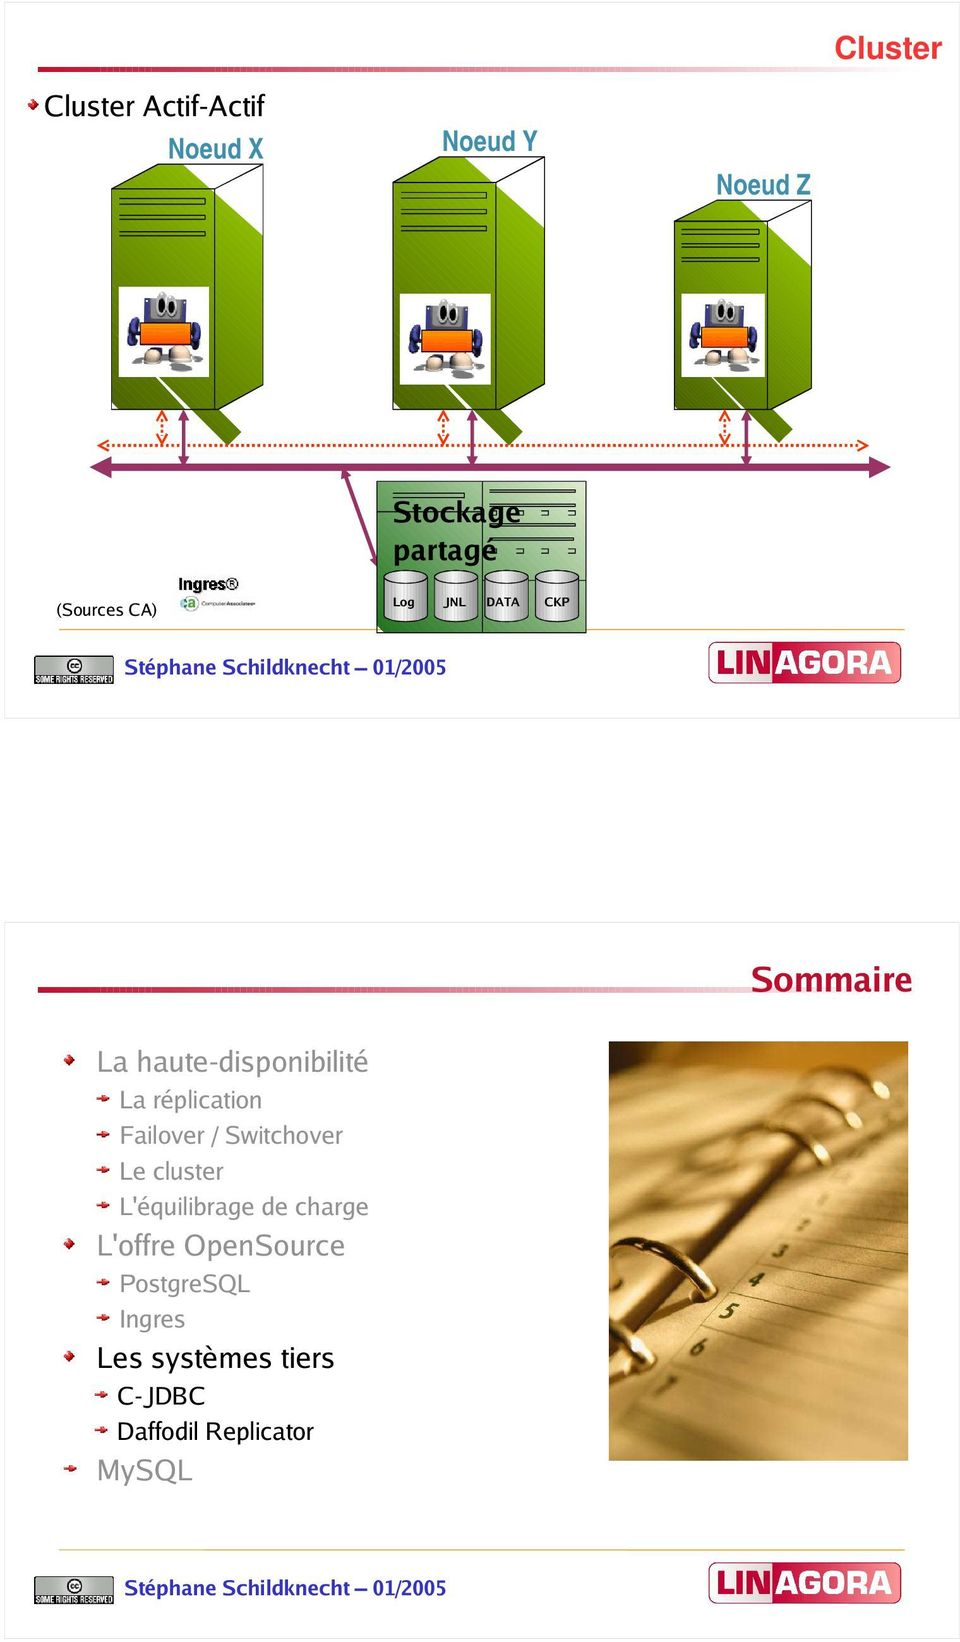 réplication Failover / Switchover Le cluster L'équilibrage de charge